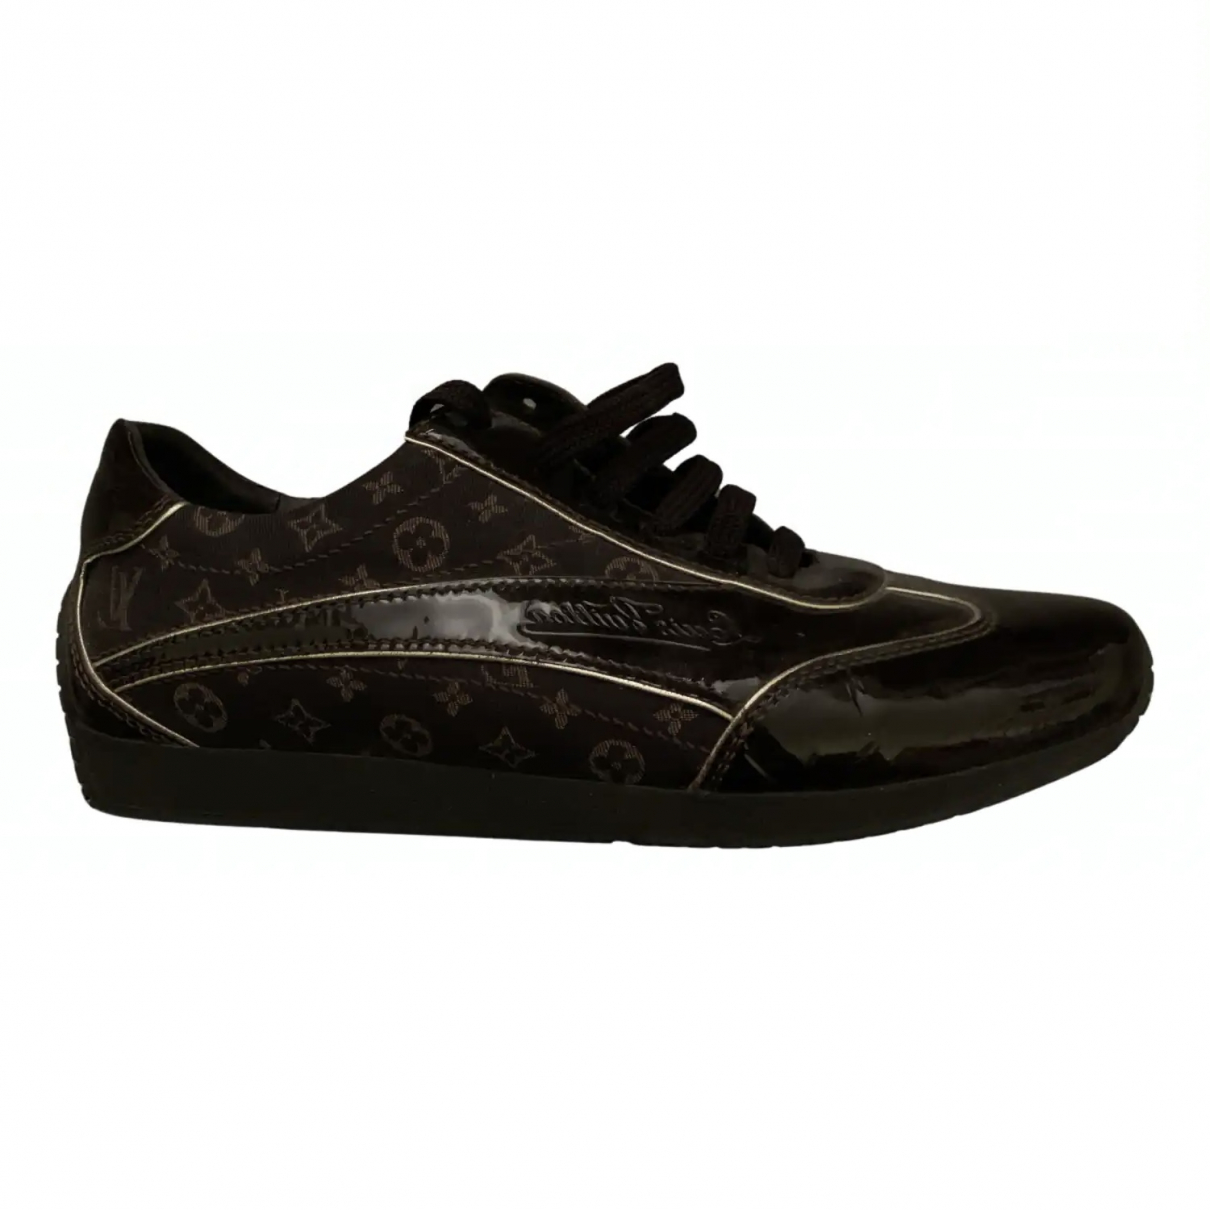 Louis Vuitton N Brown Patent leather Trainers for Women 38 EU